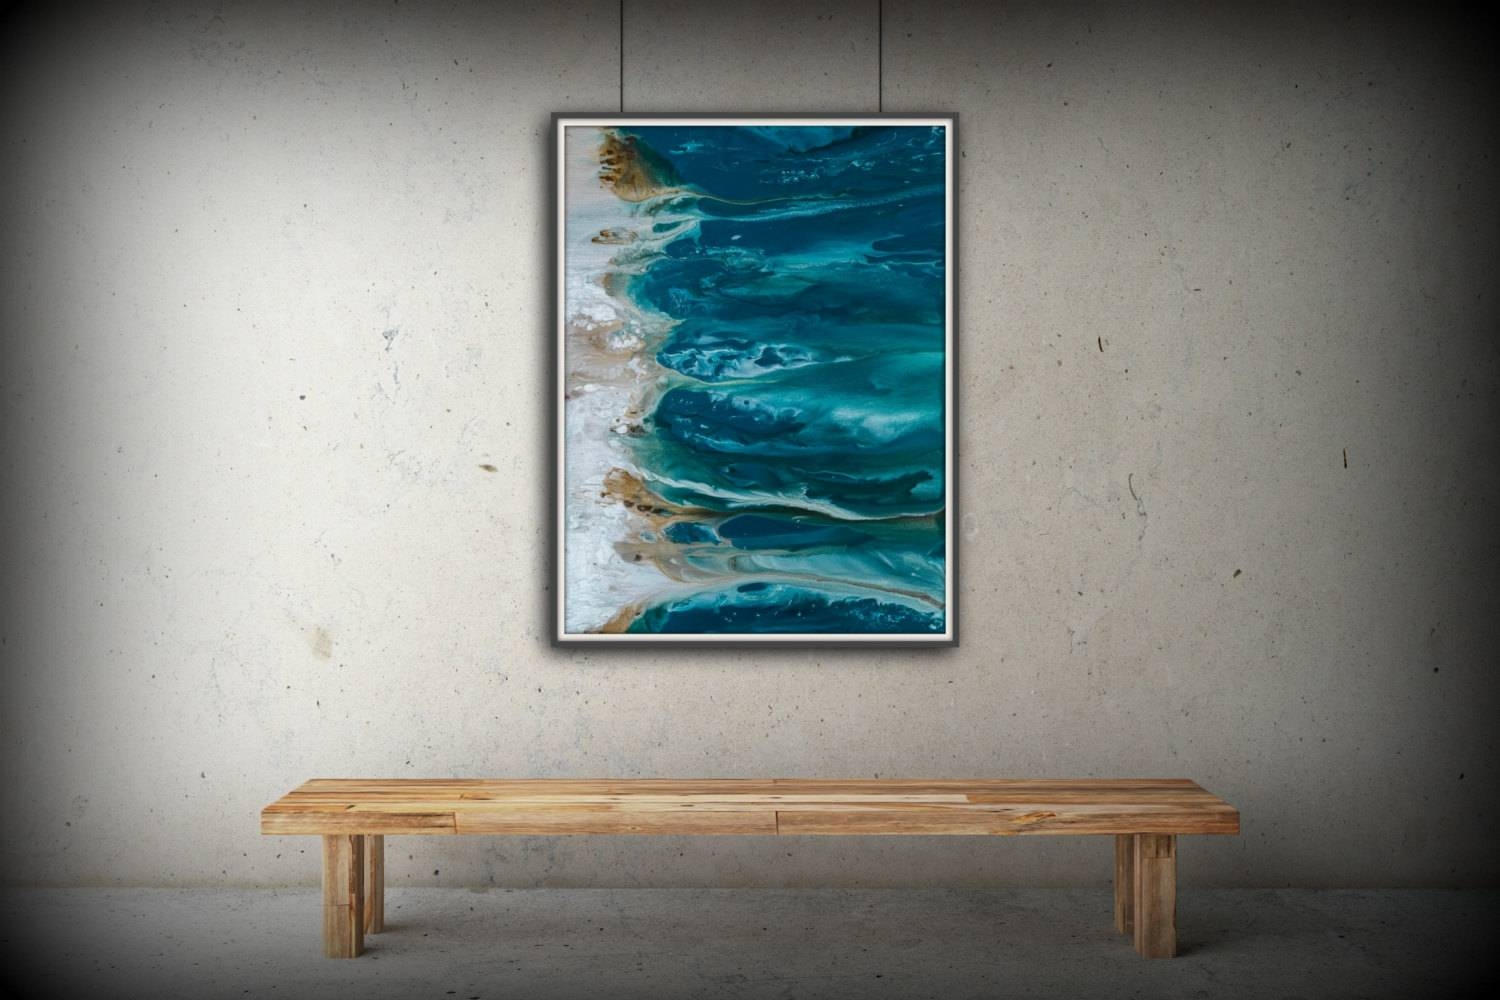 Abstract Art Blue Wall Art Coastal Landscape Giclee Large In Recent Coastal Wall Artcanvas (View 4 of 20)